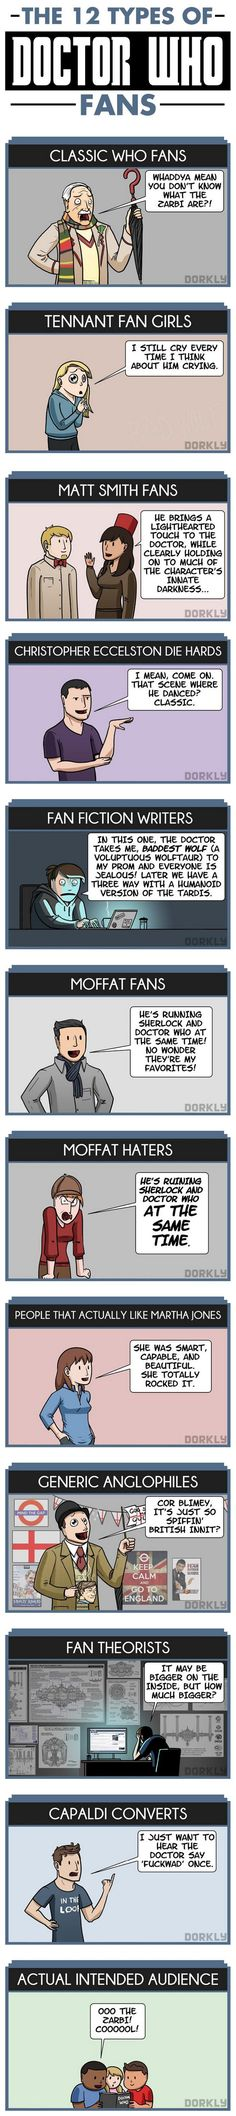 The many types of Dr Who fans. Please pardon the curse  word